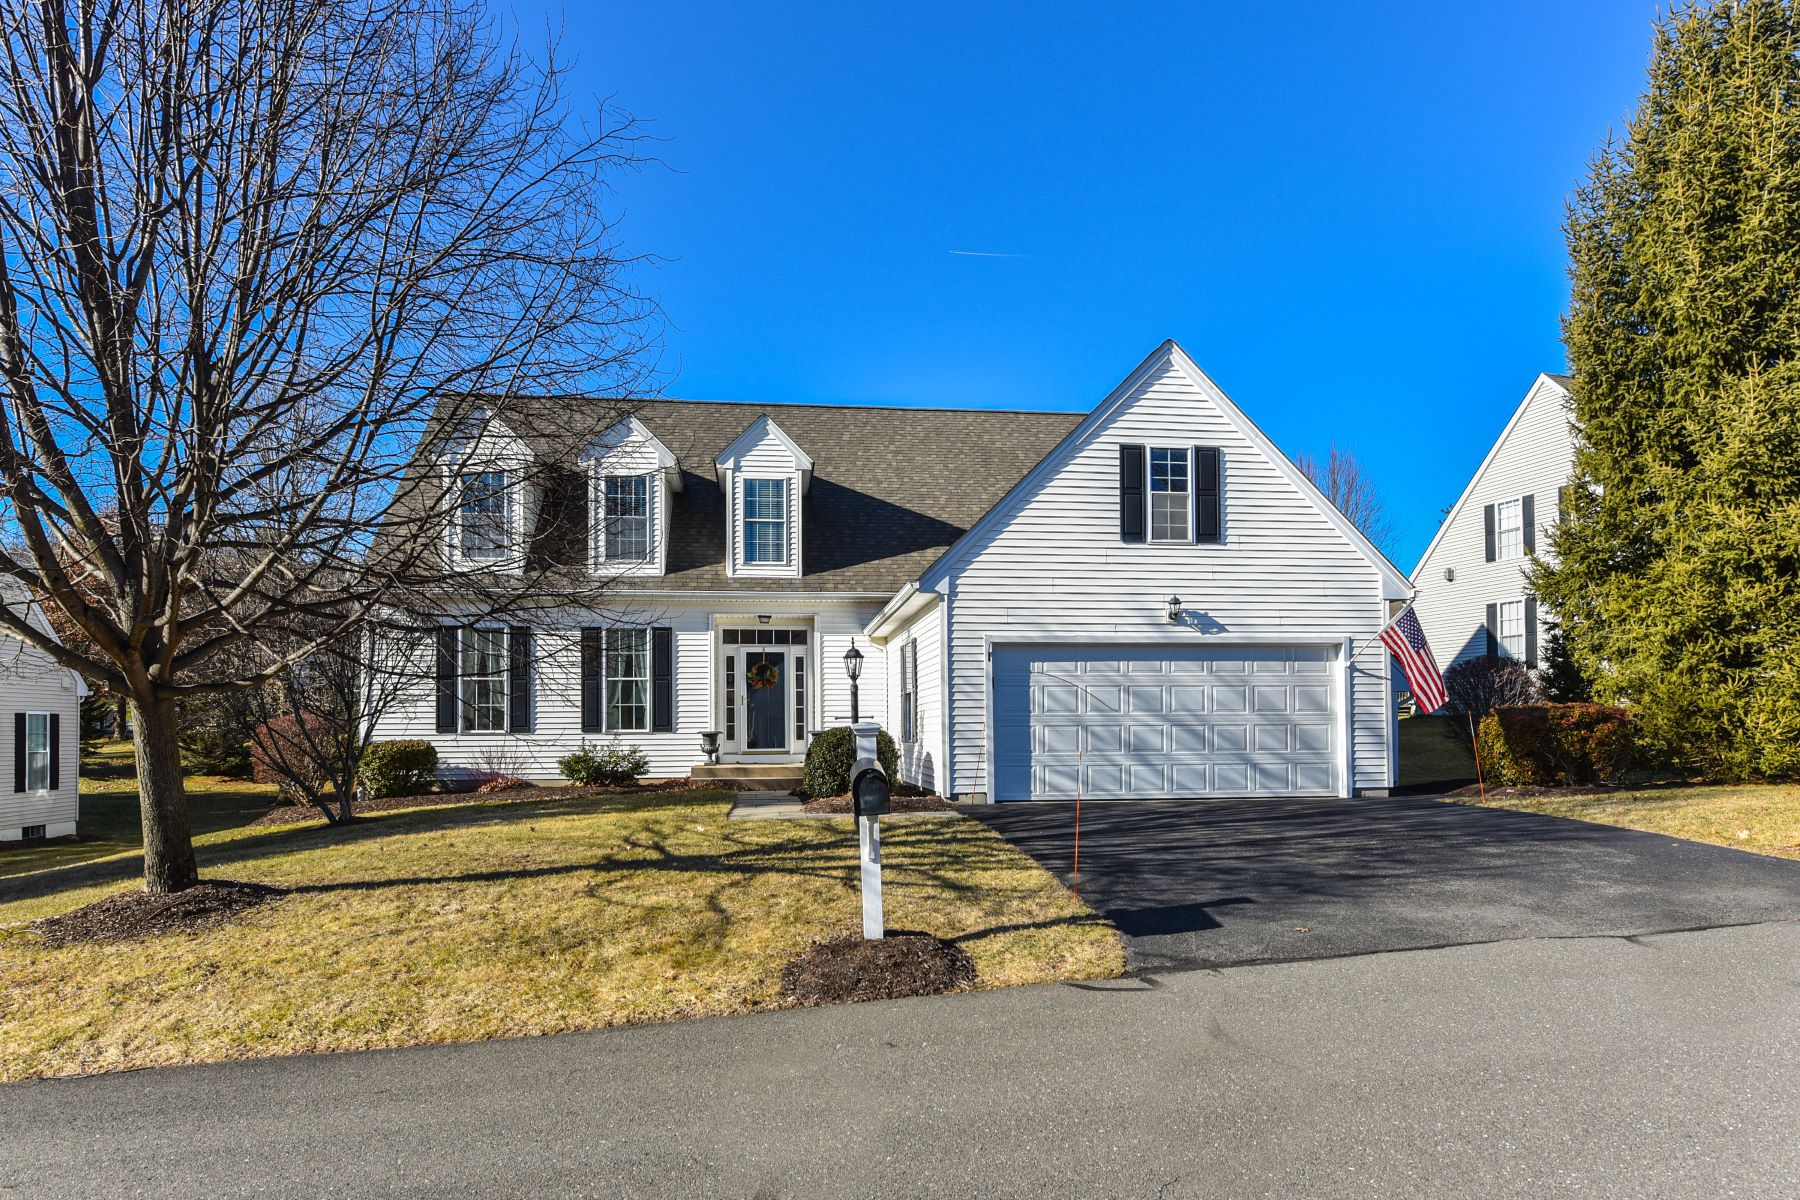 Single Family Homes for Sale at 9 Chelsea Place 9 Avon, Connecticut 06001 United States